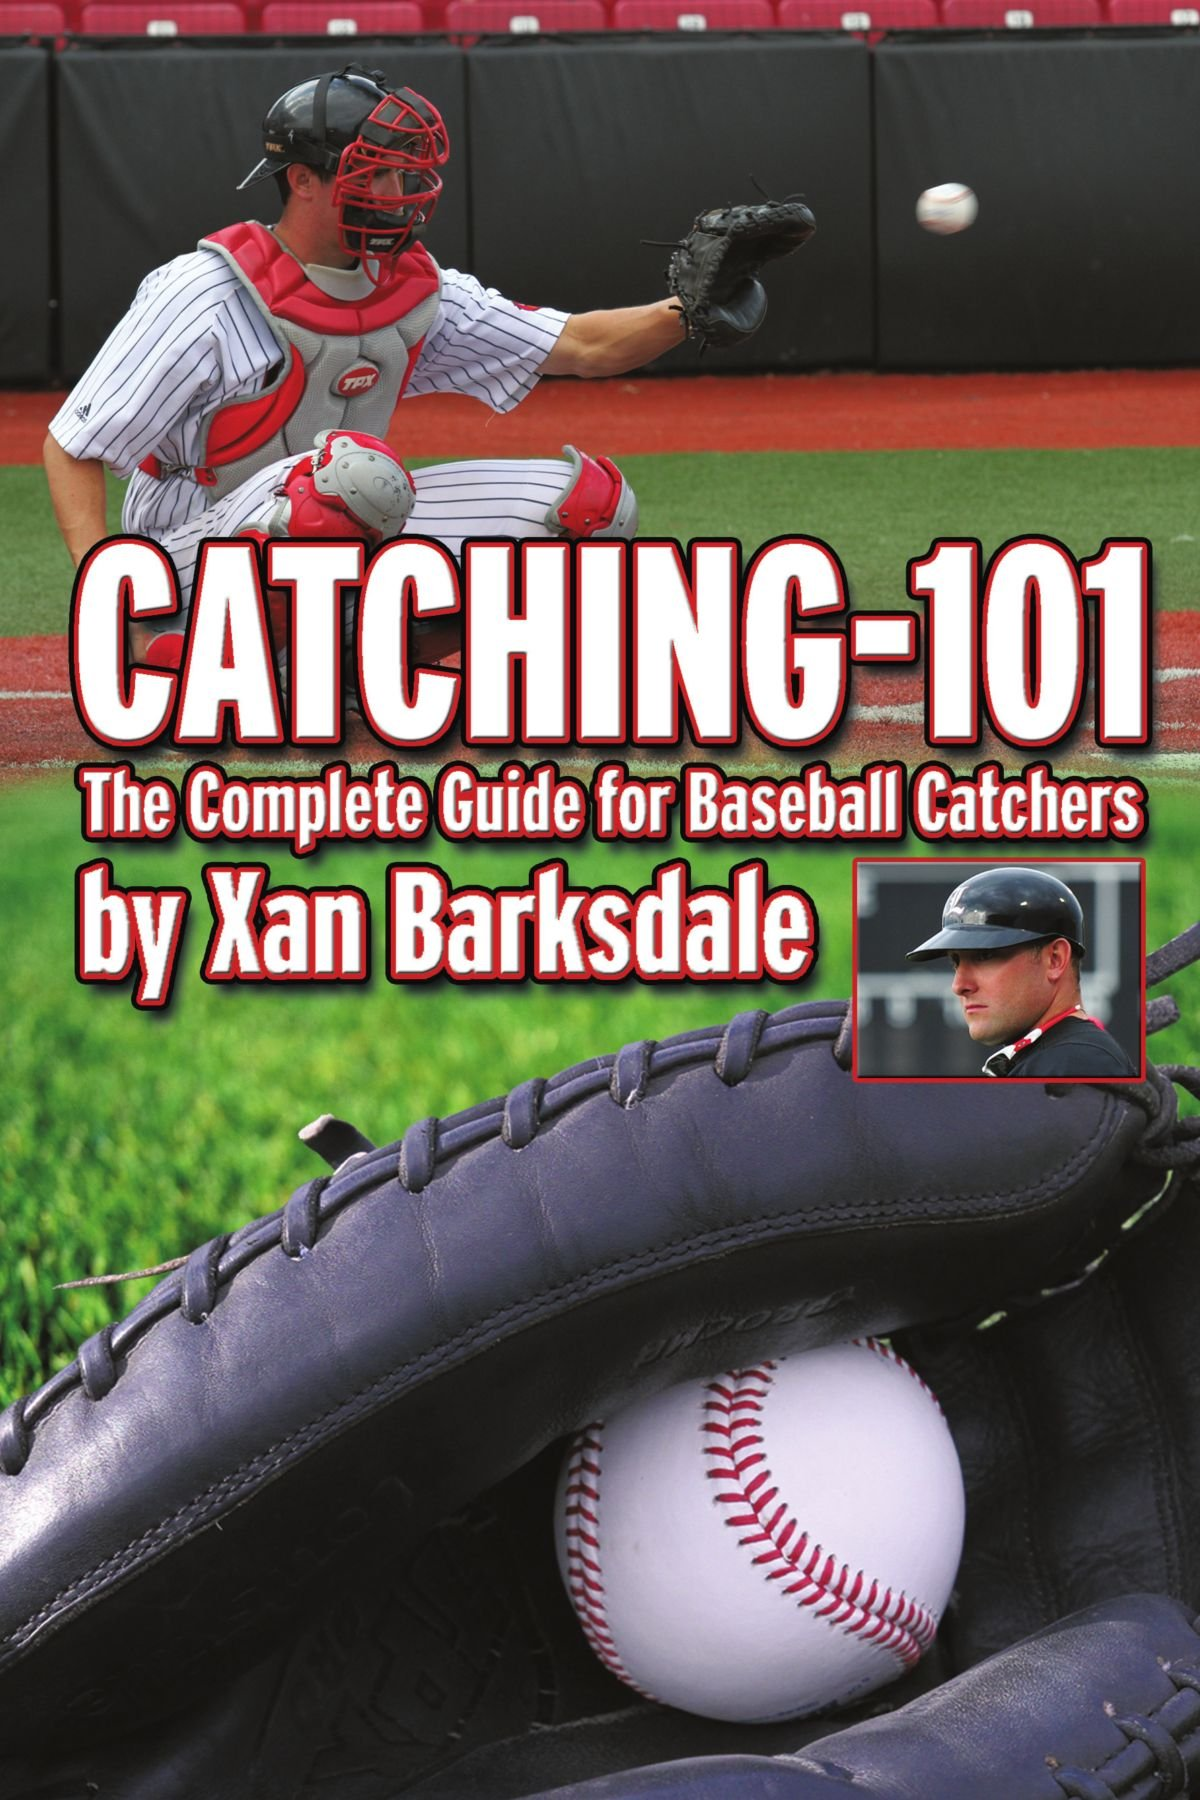 Catching-101: The Complete Guide For Baseball Catchers by AuthorHouse